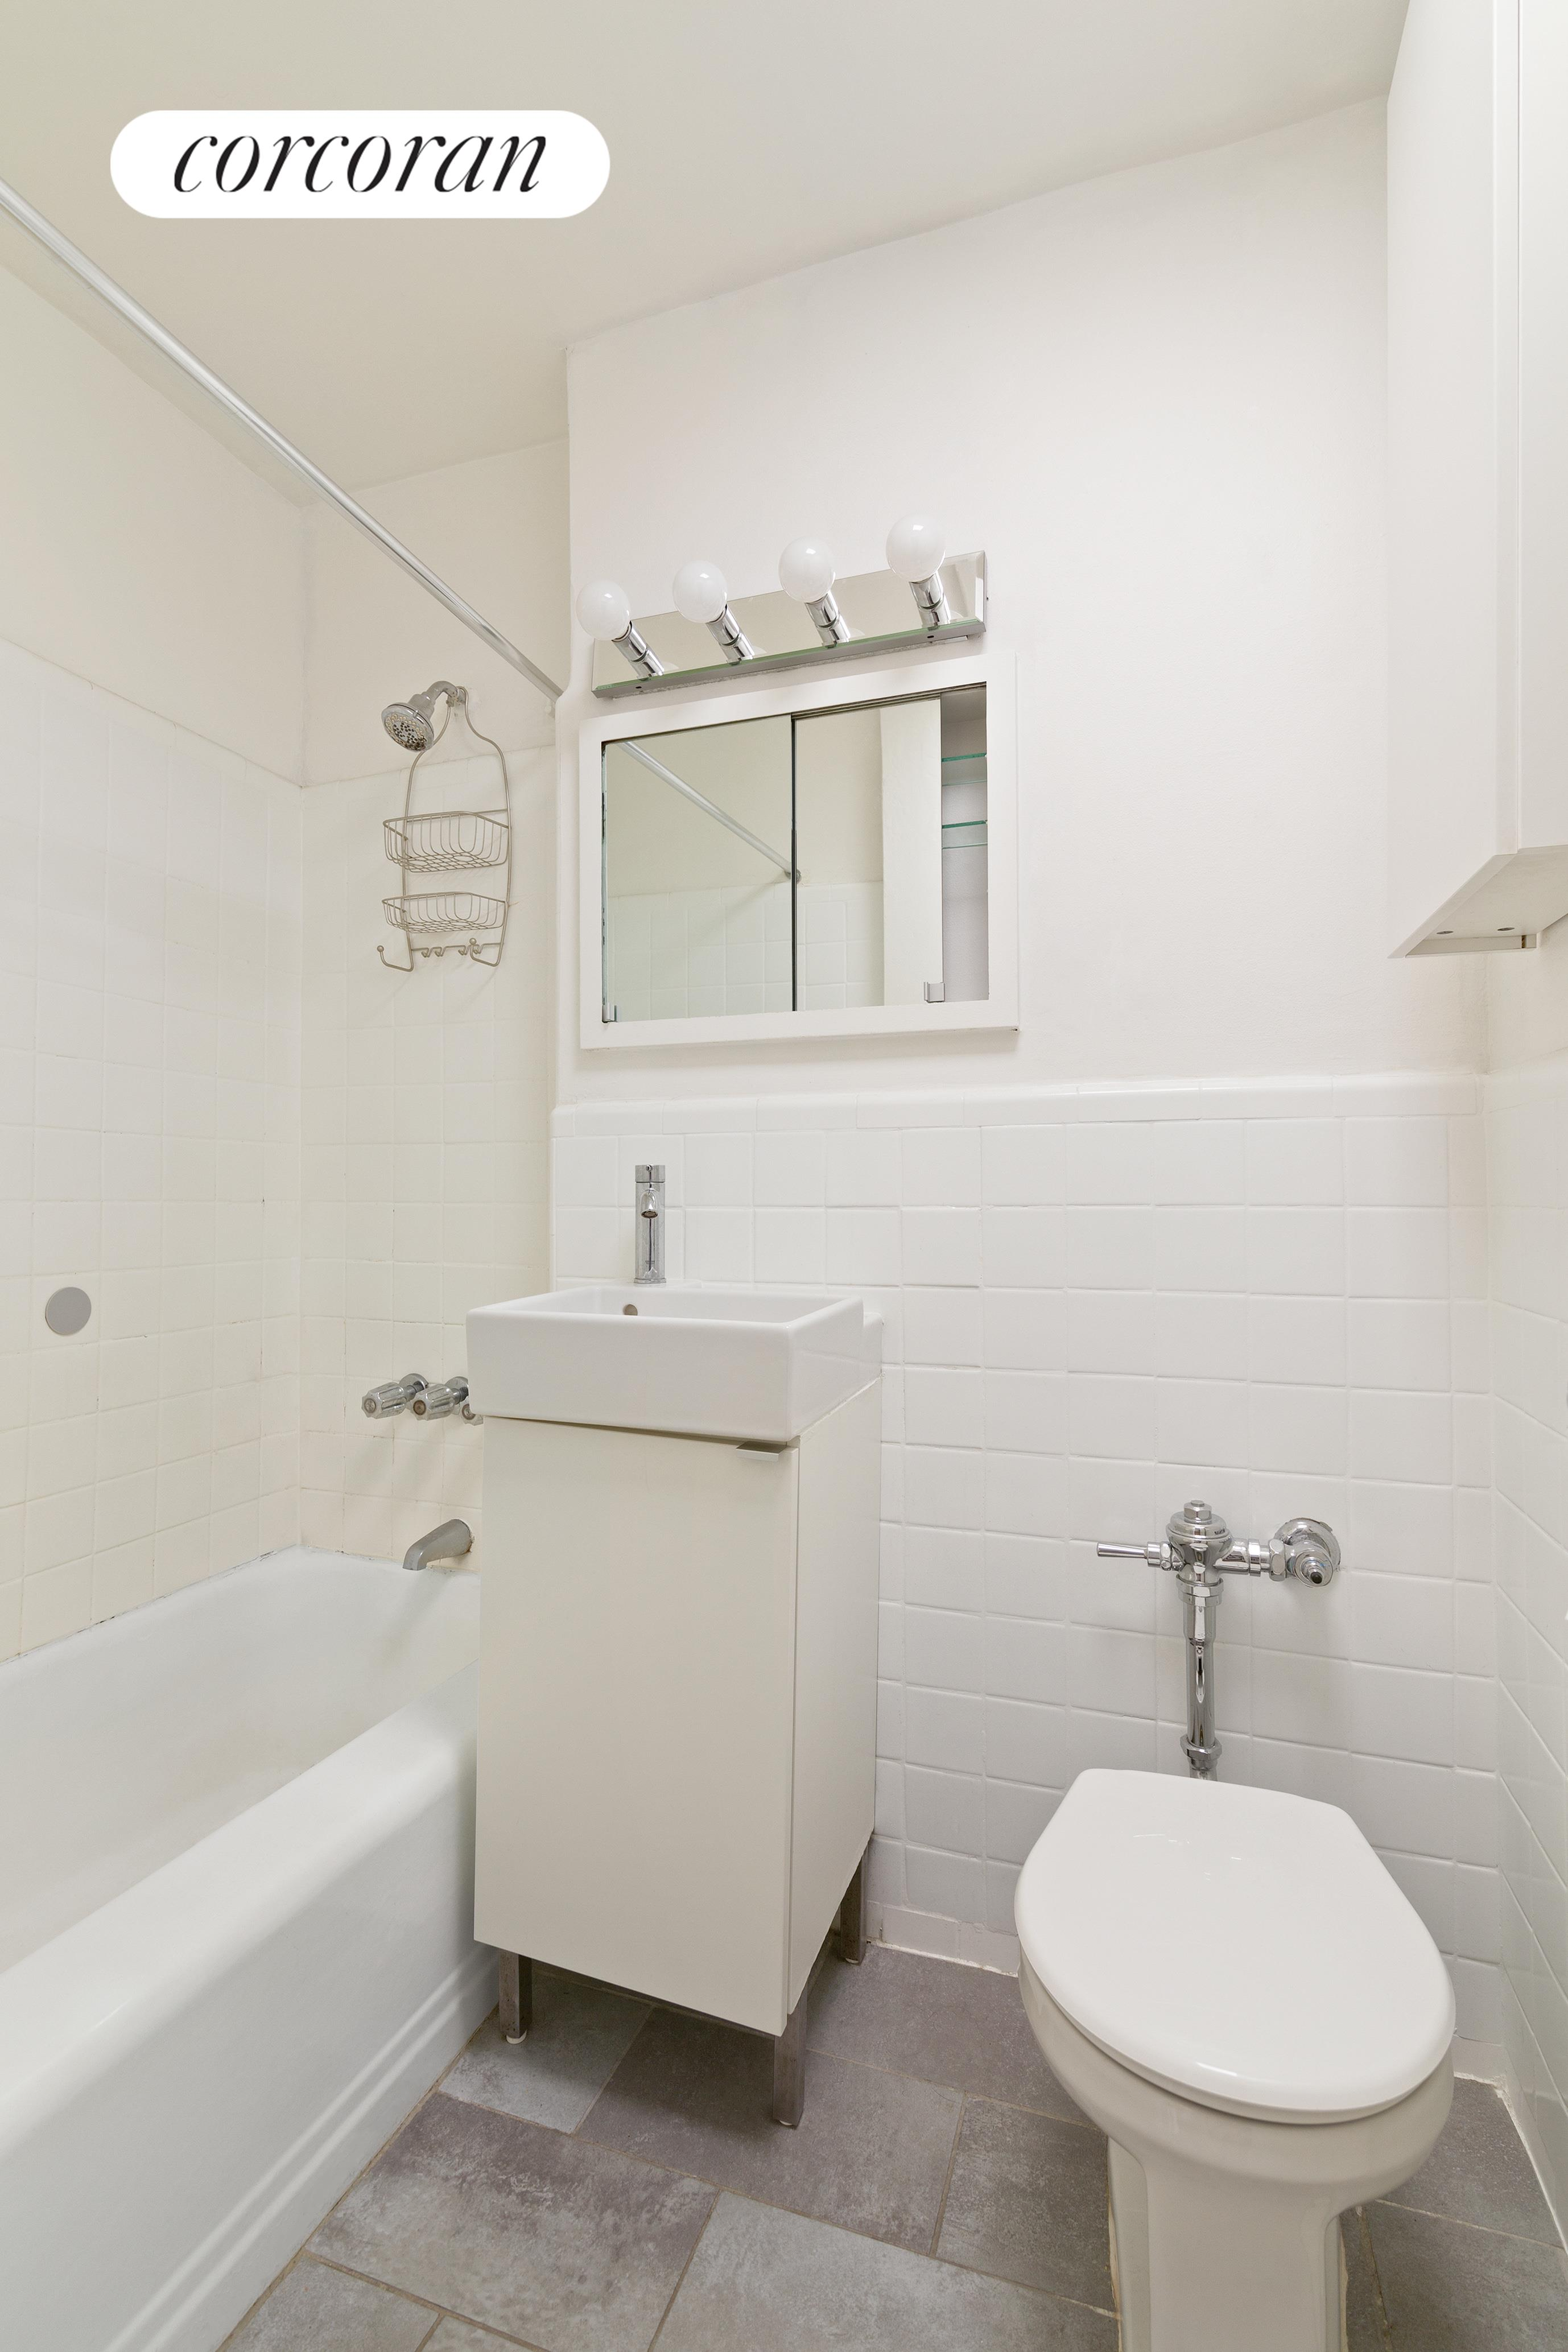 Apartment for sale at 439 East 88th Street, Apt 5C